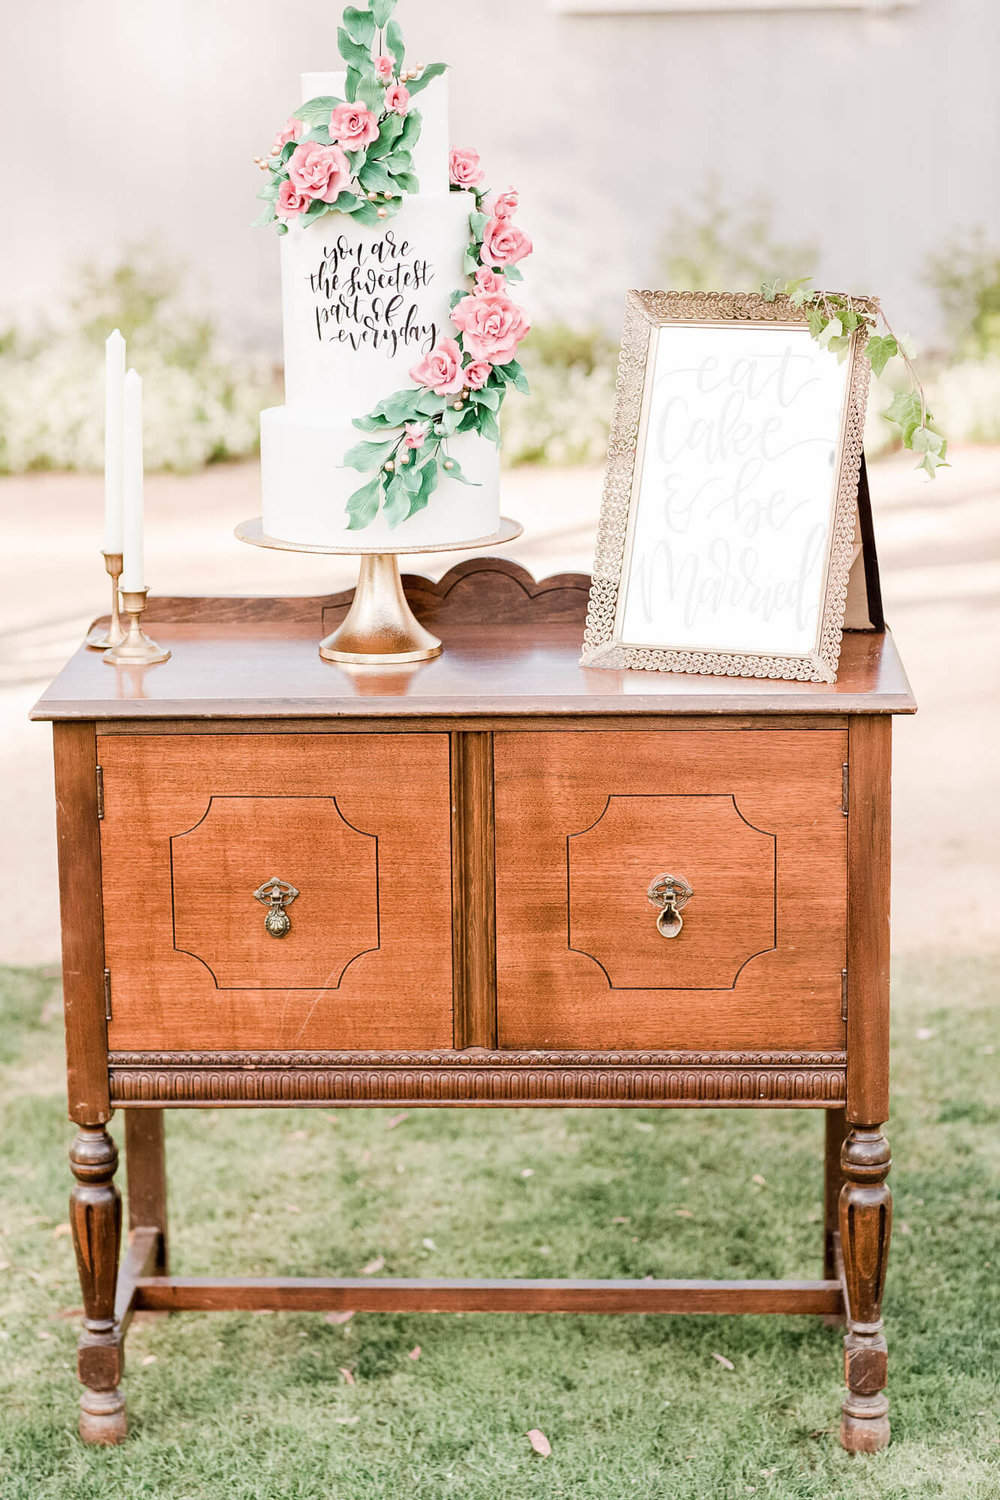 Featured on Every Last Detail + WeddingWire's Instagram + Souther California Bride's Instagram